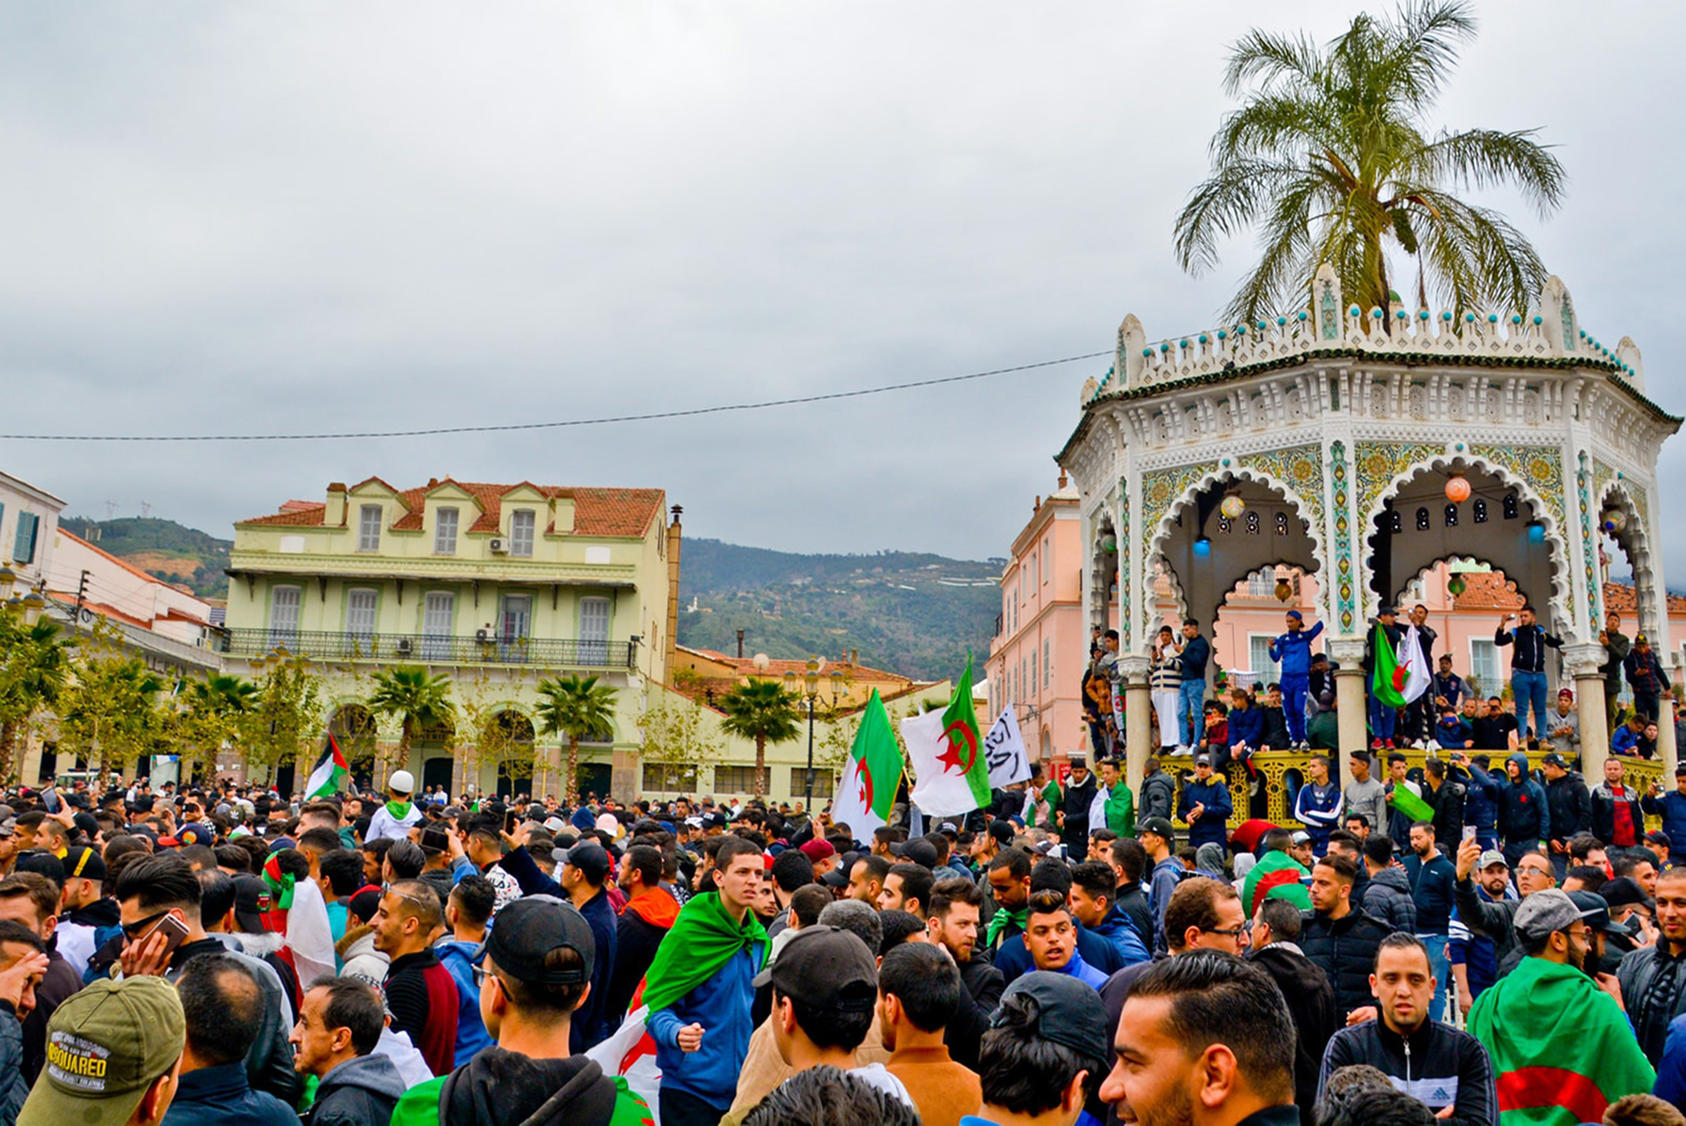 Protesters assemble in opposition to President Bouteflika's fifth term in Blida, Algeria, March 10, 2019. (Fethi Hamlati/Wikimedia)